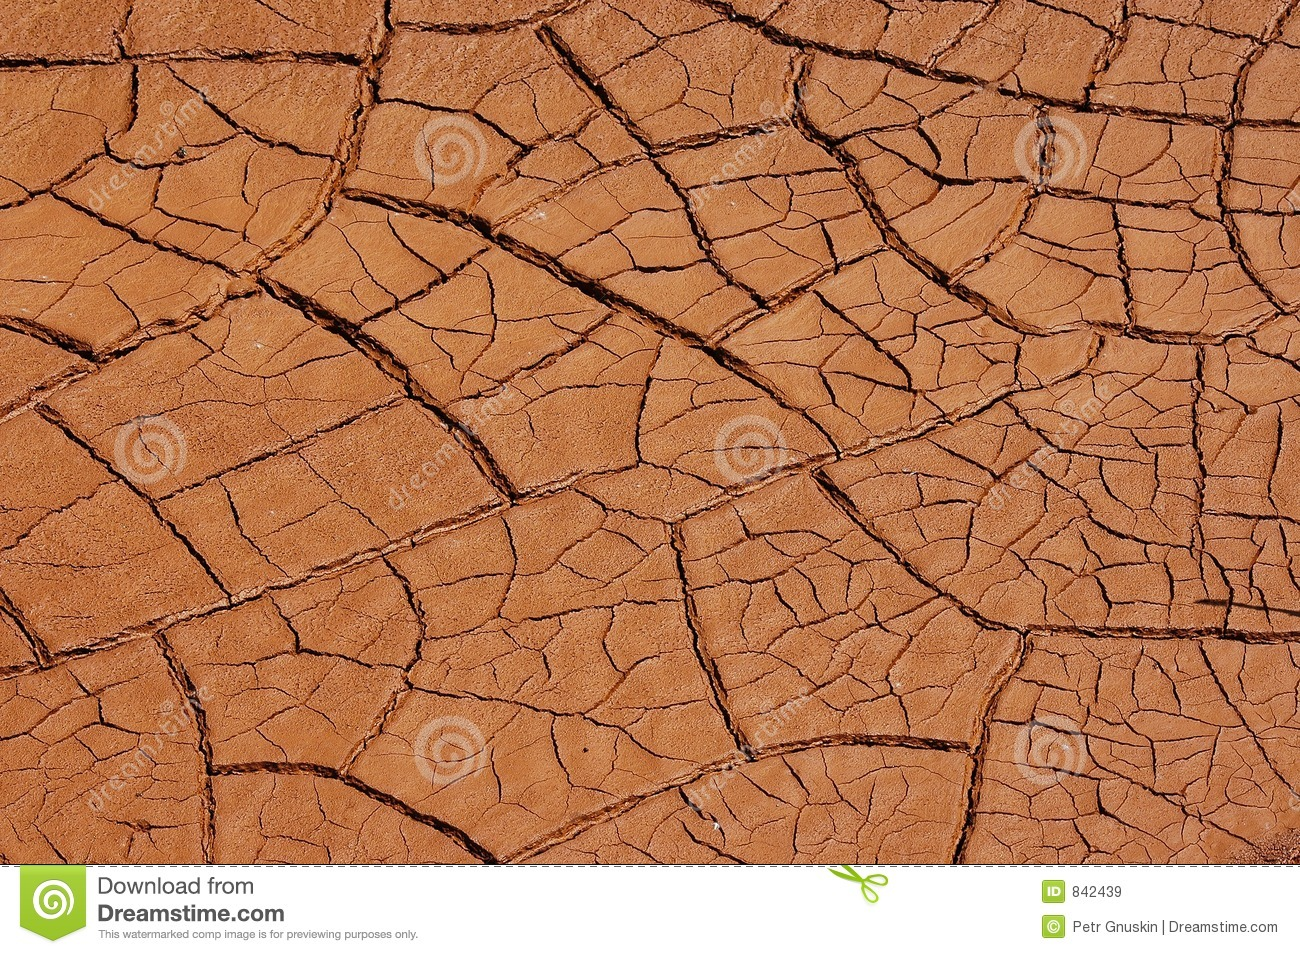 Surface of mars.